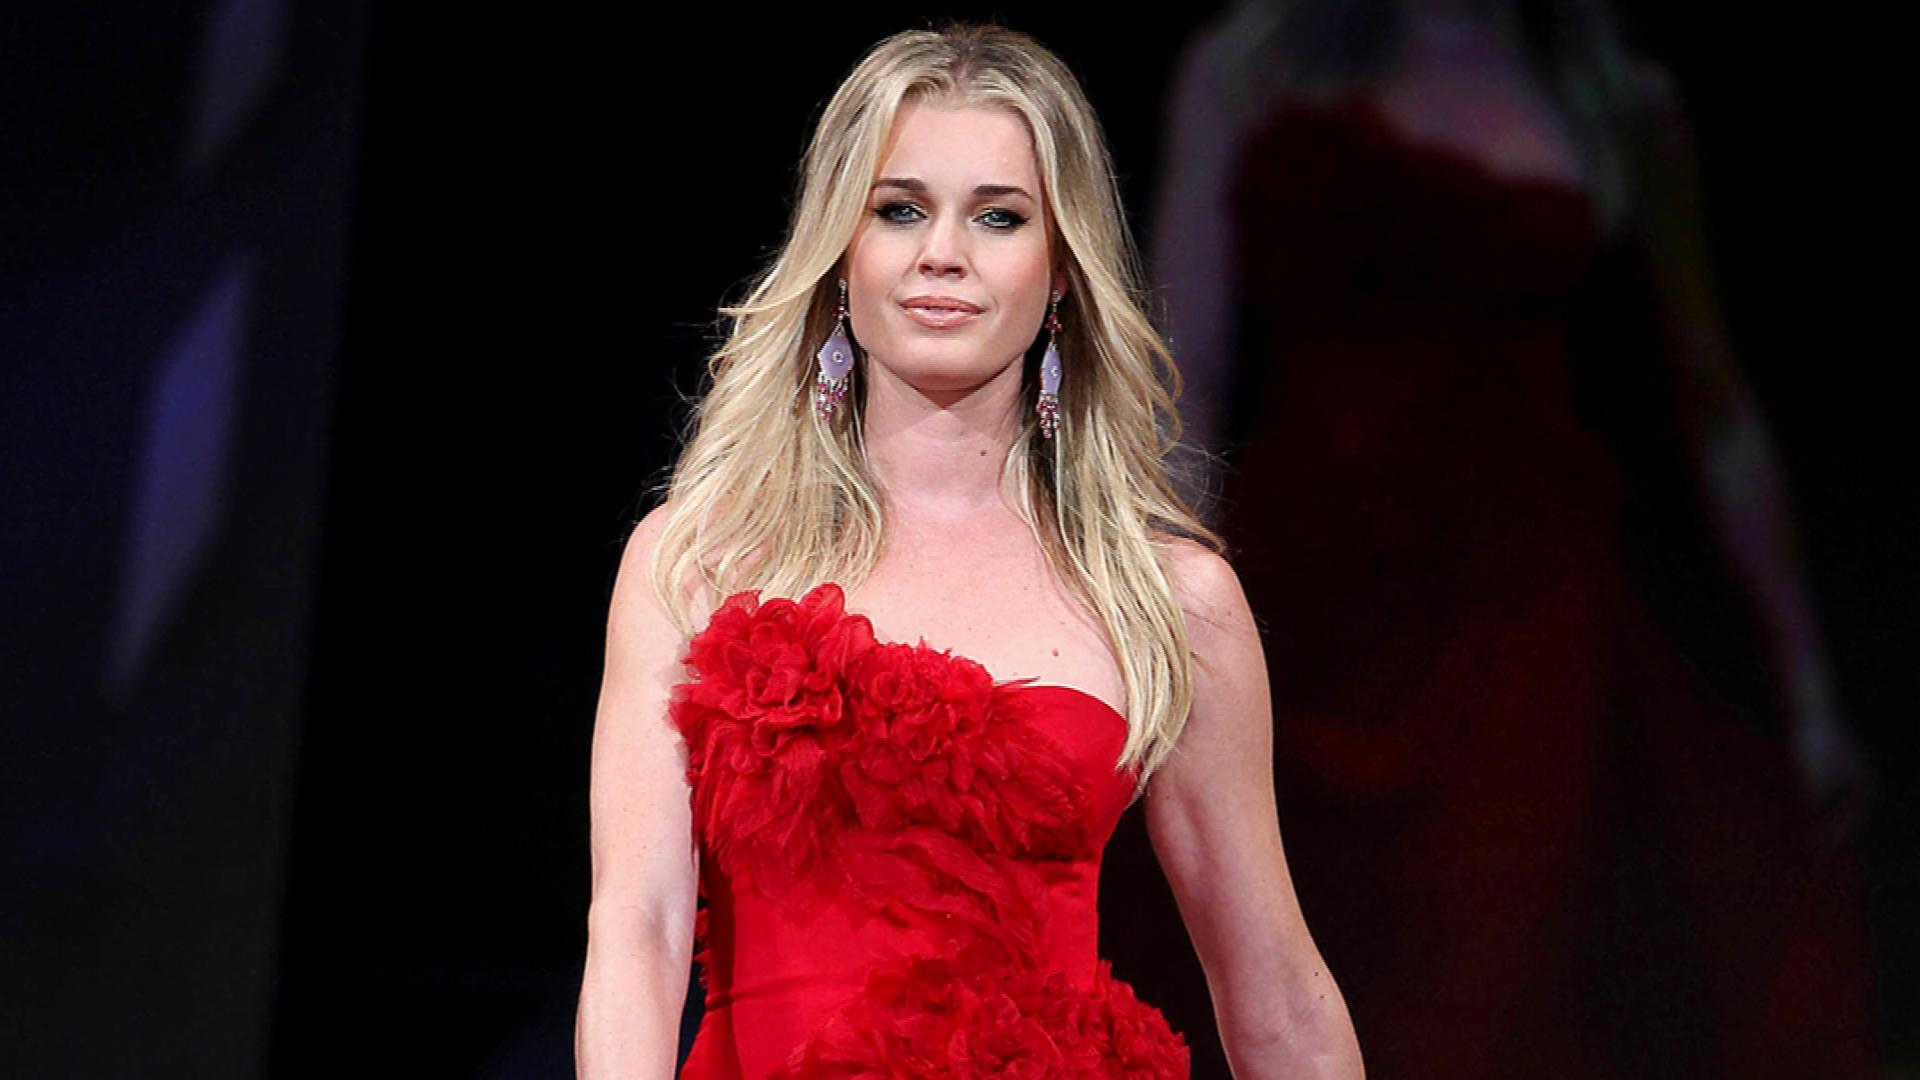 rebecca romijn biographie - photo #42